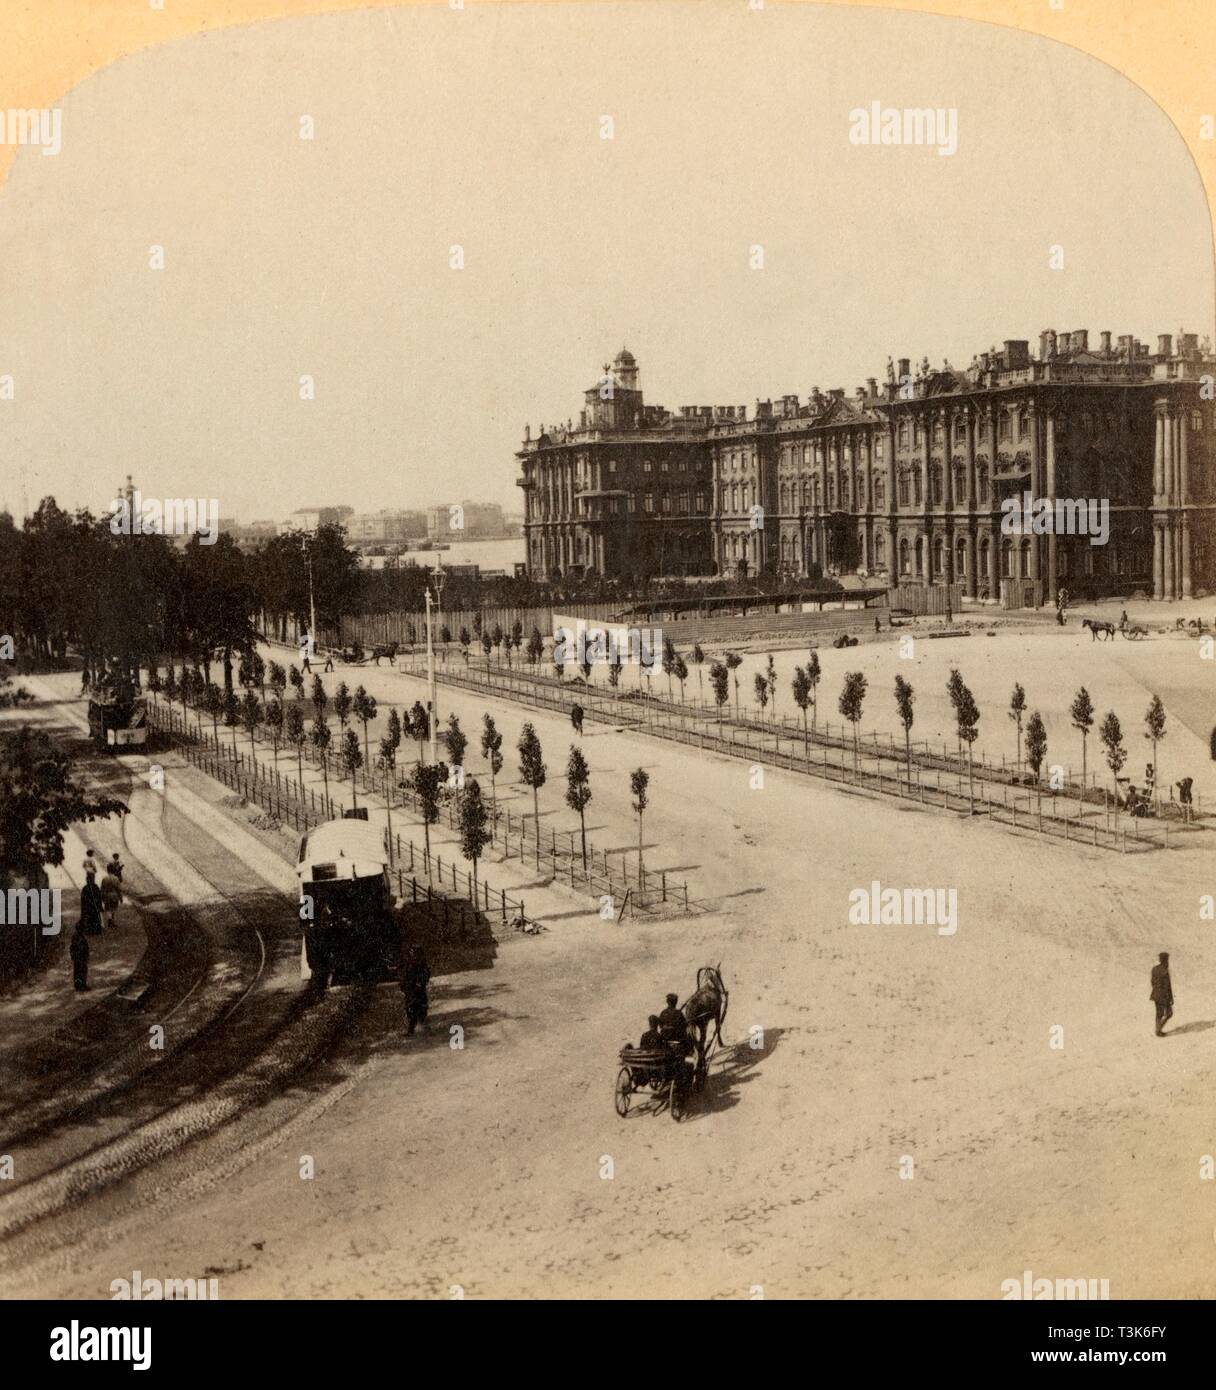 'The Imperial Winter Palace from Nevsky Prospect, St. Petersburg, Russia', 1897. Creator: Underwood & Underwood. Stock Photo